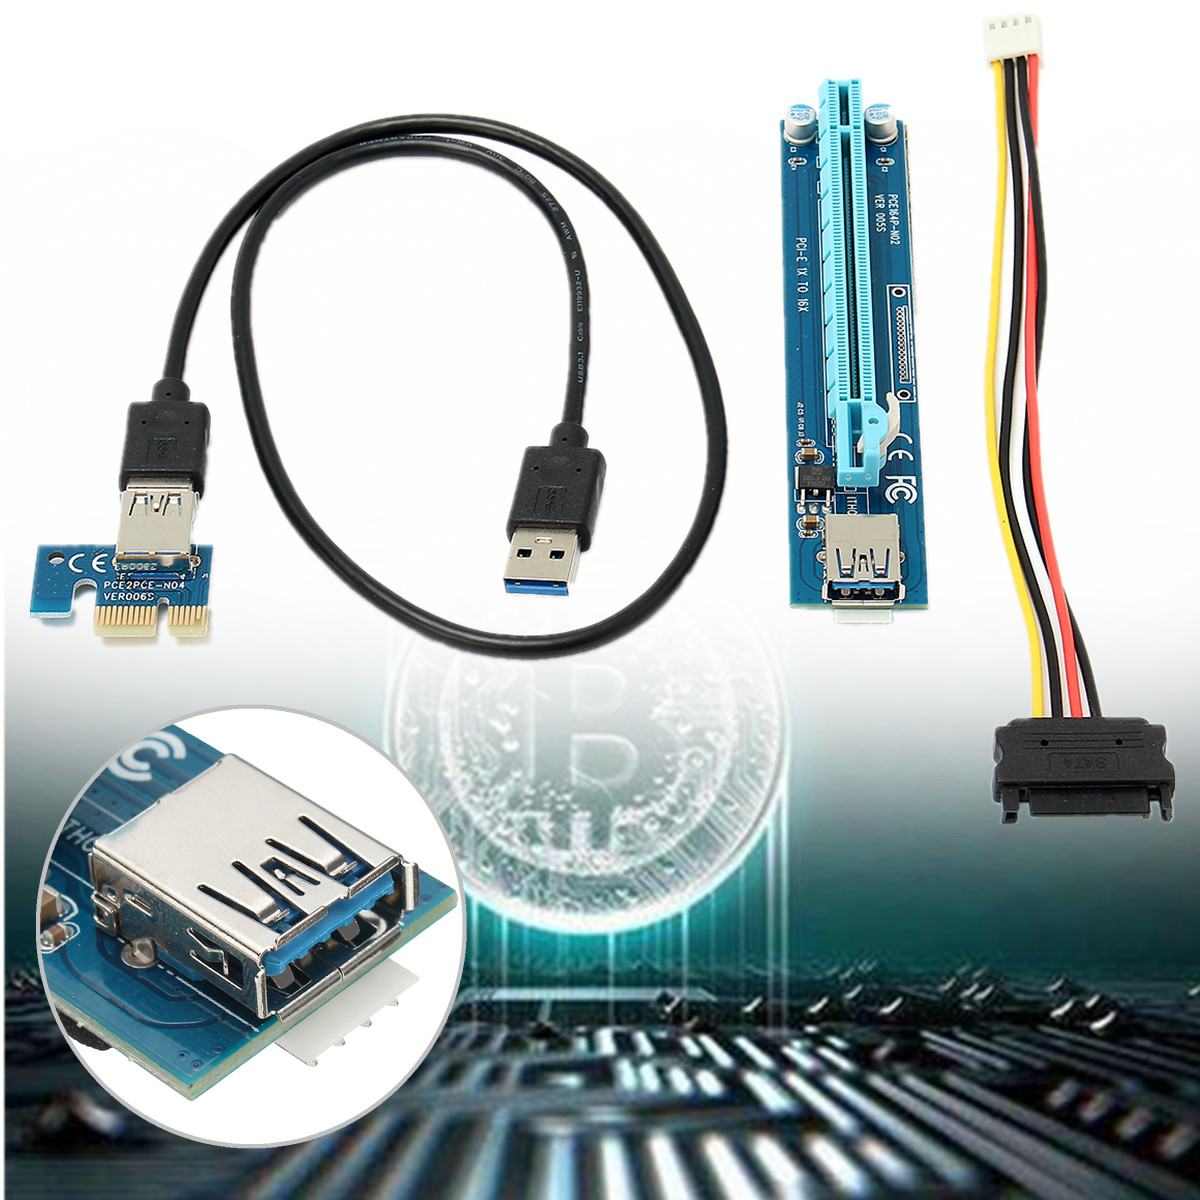 Other Desktop Components - 60cm USB 3.0 PCI-E Express 1x To 16x ...